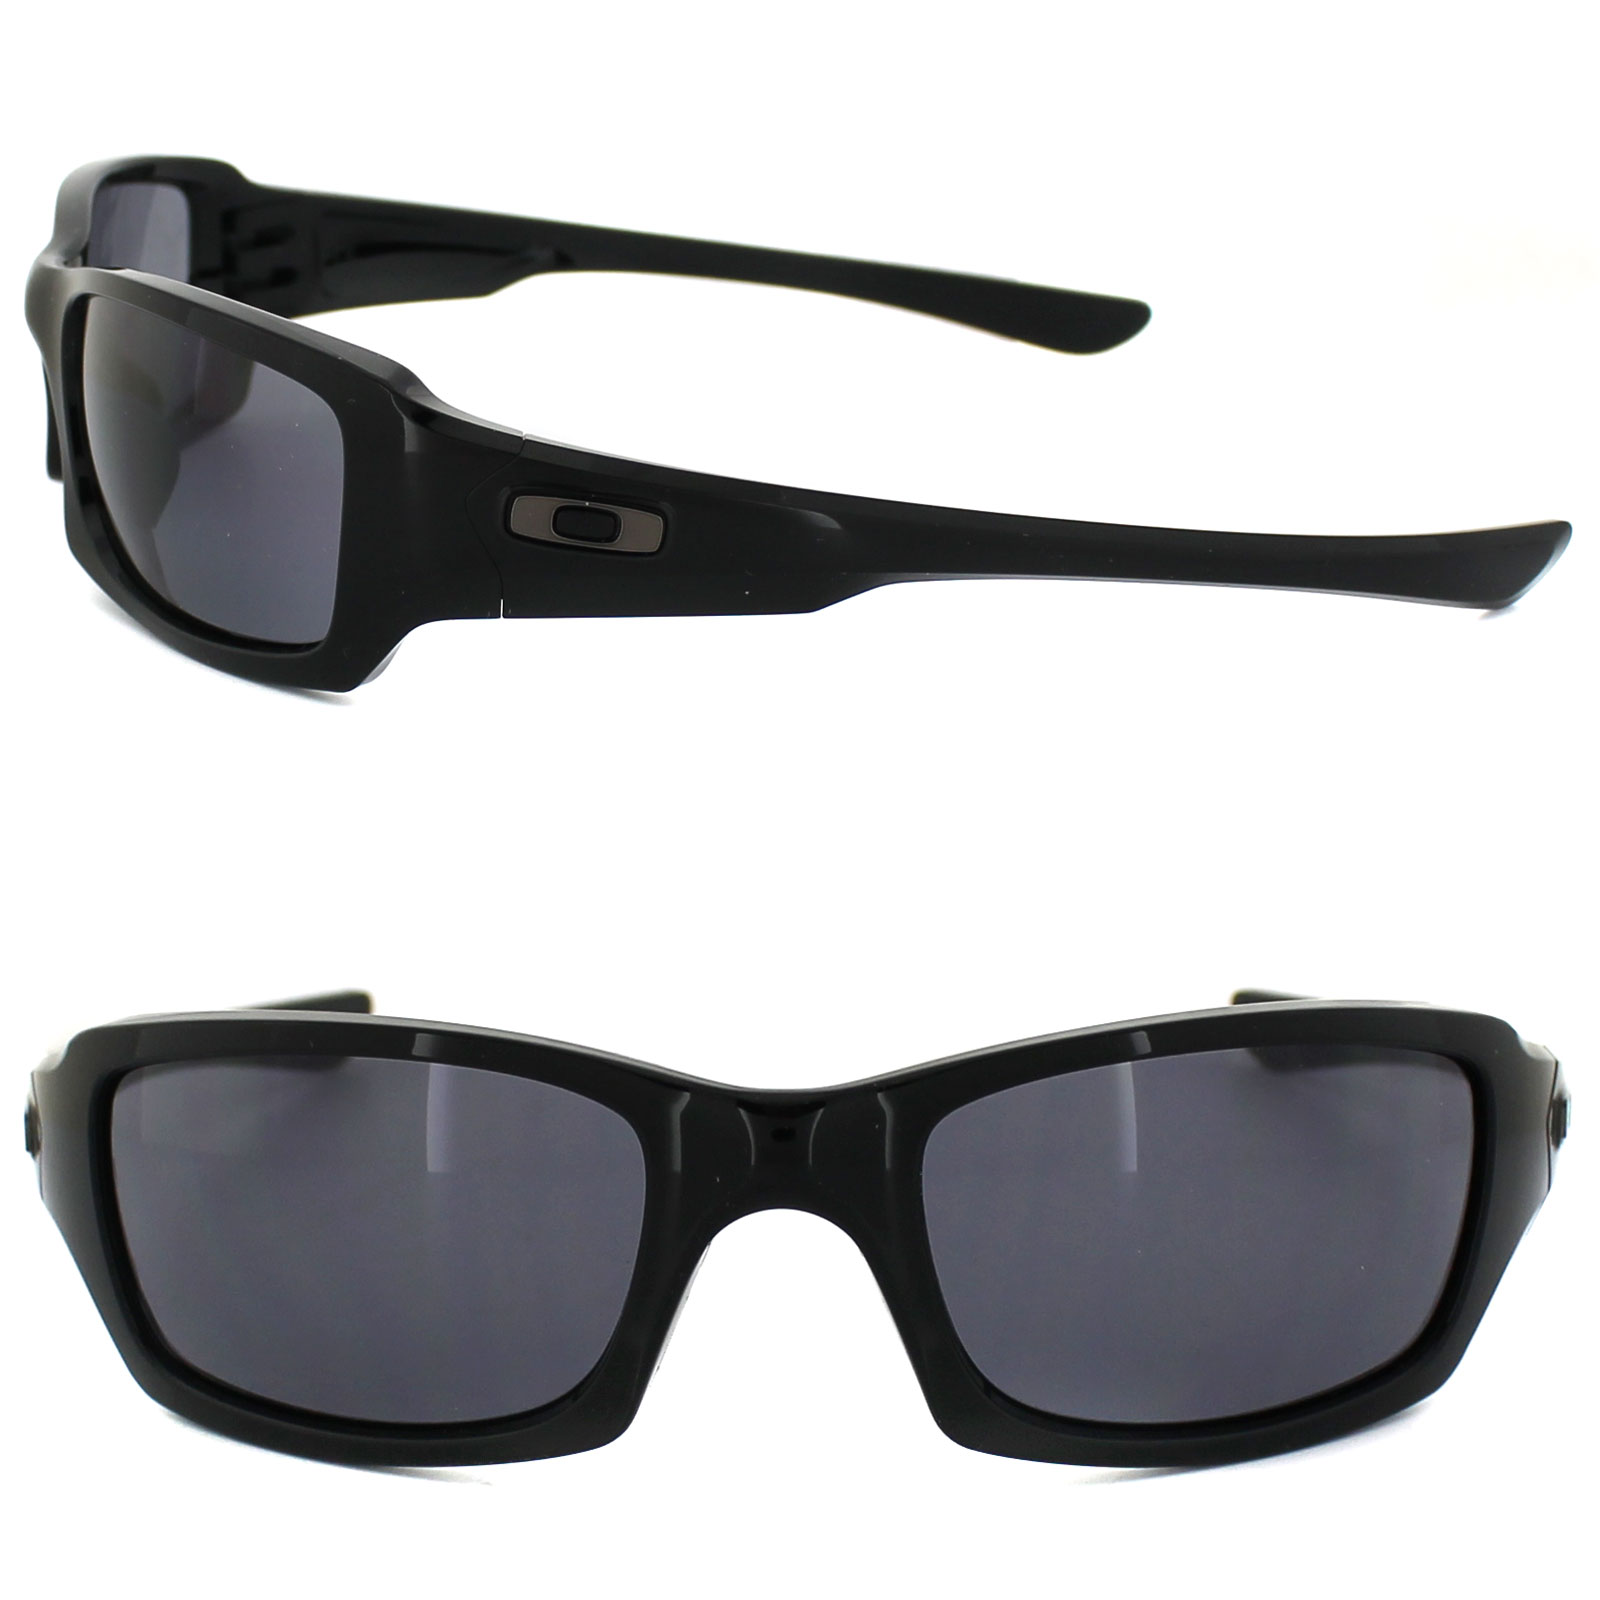 112bf6373e ... denmark sentinel oakley sunglasses fives squared oo9238 04 polished  black grey a3b8c d605a